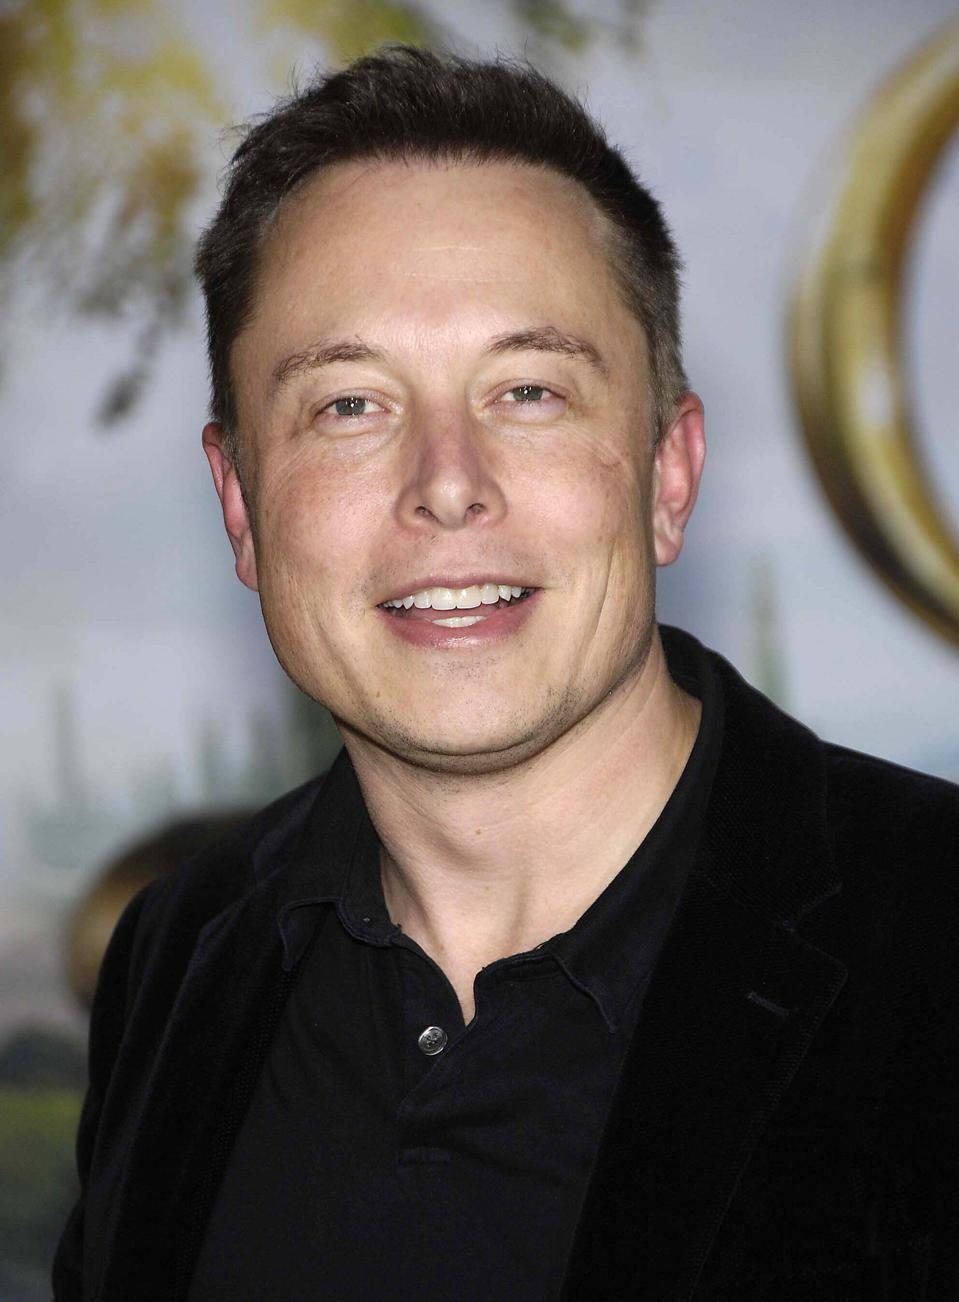 Elon Musk reportedly under SEC scrutiny for Dogecoin tweets